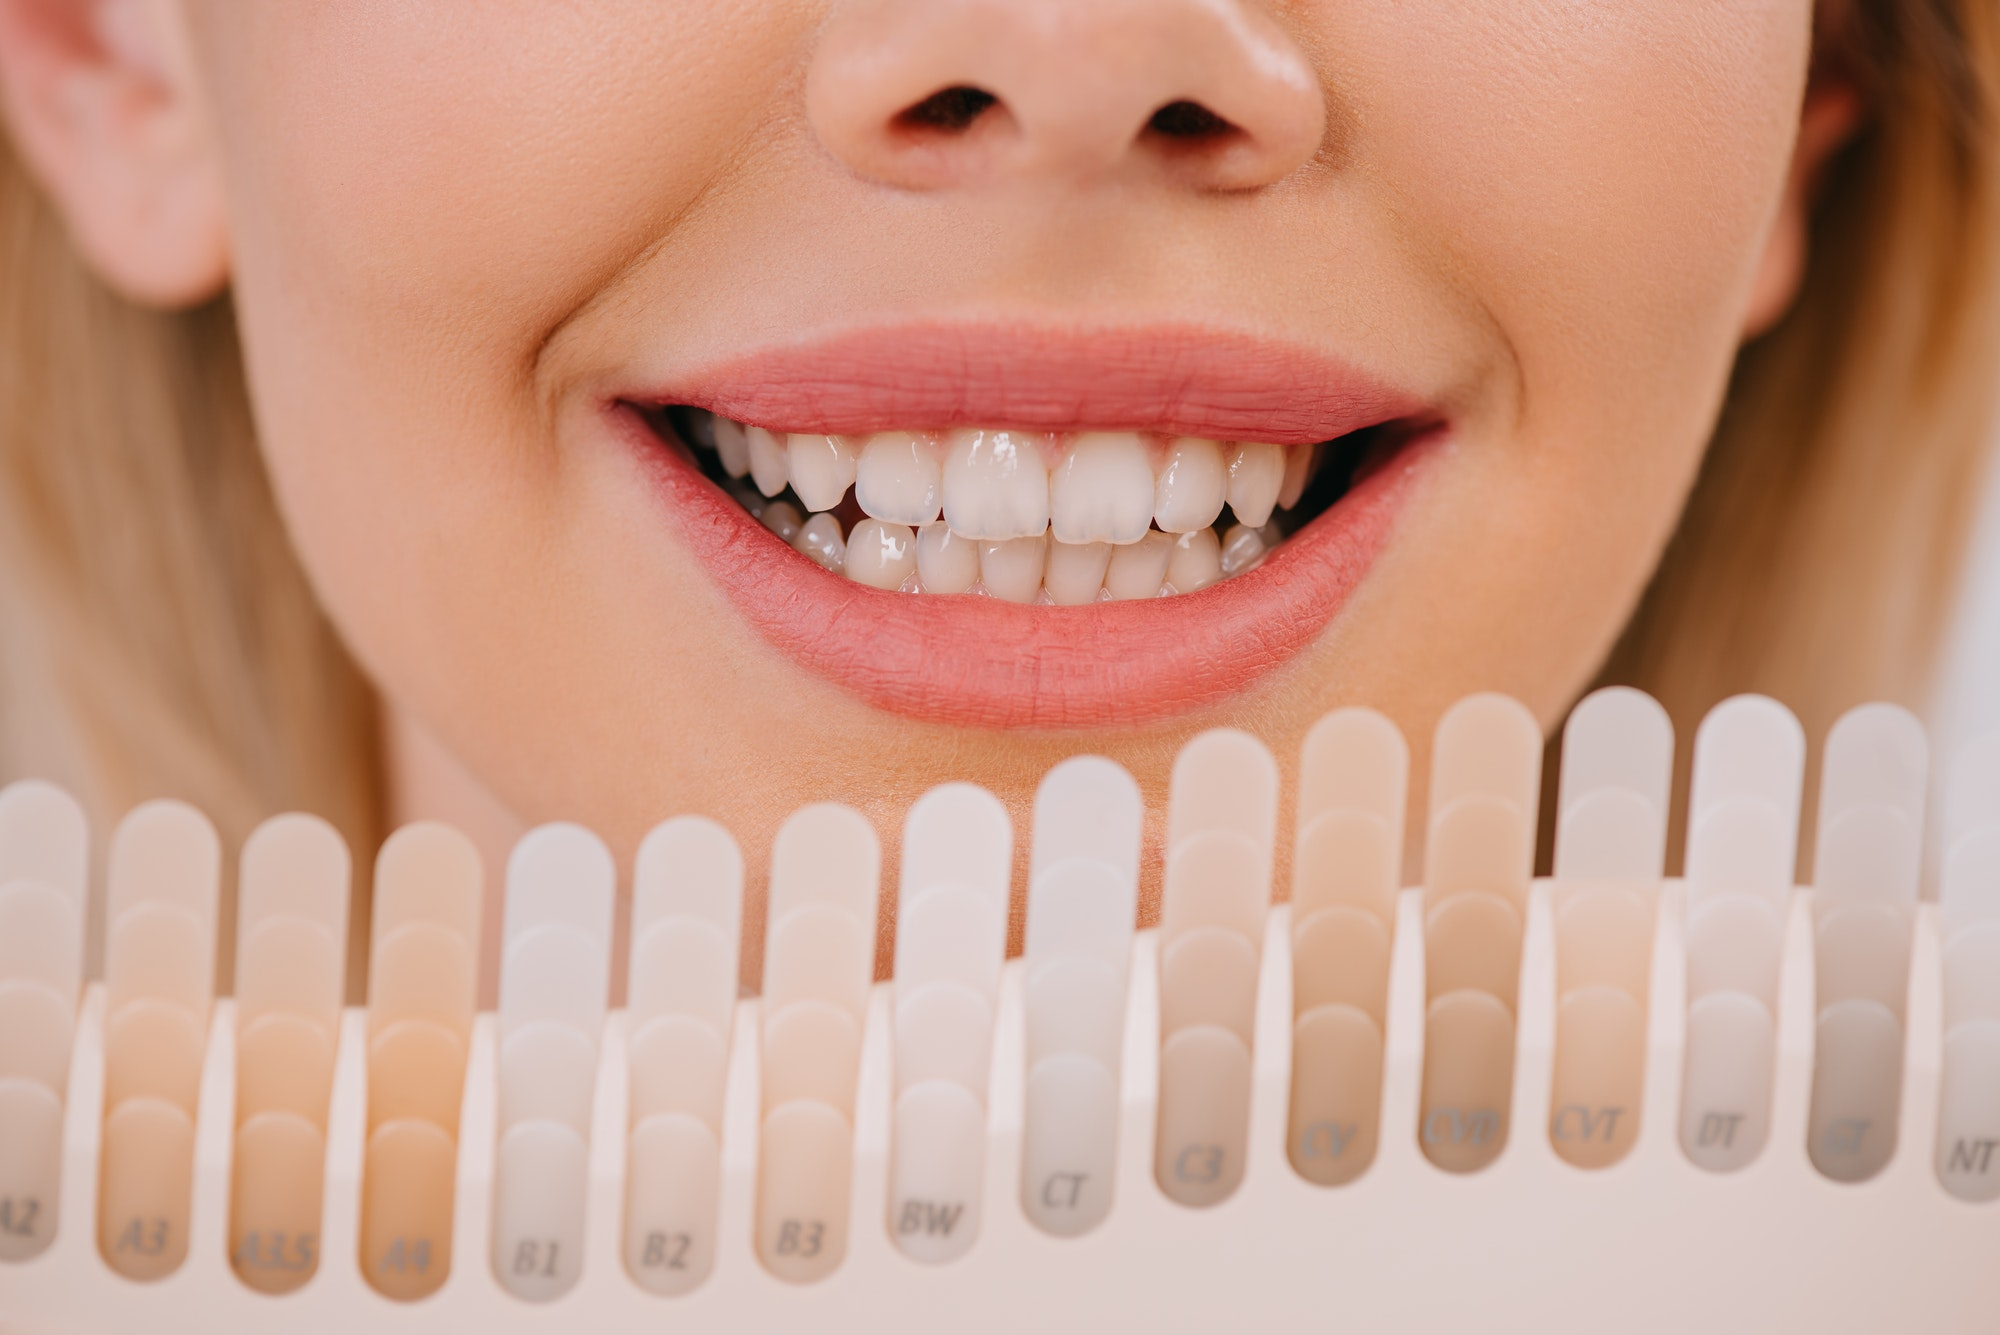 cropped view of smiling woman holding teeth color palette, teeth whitening concept